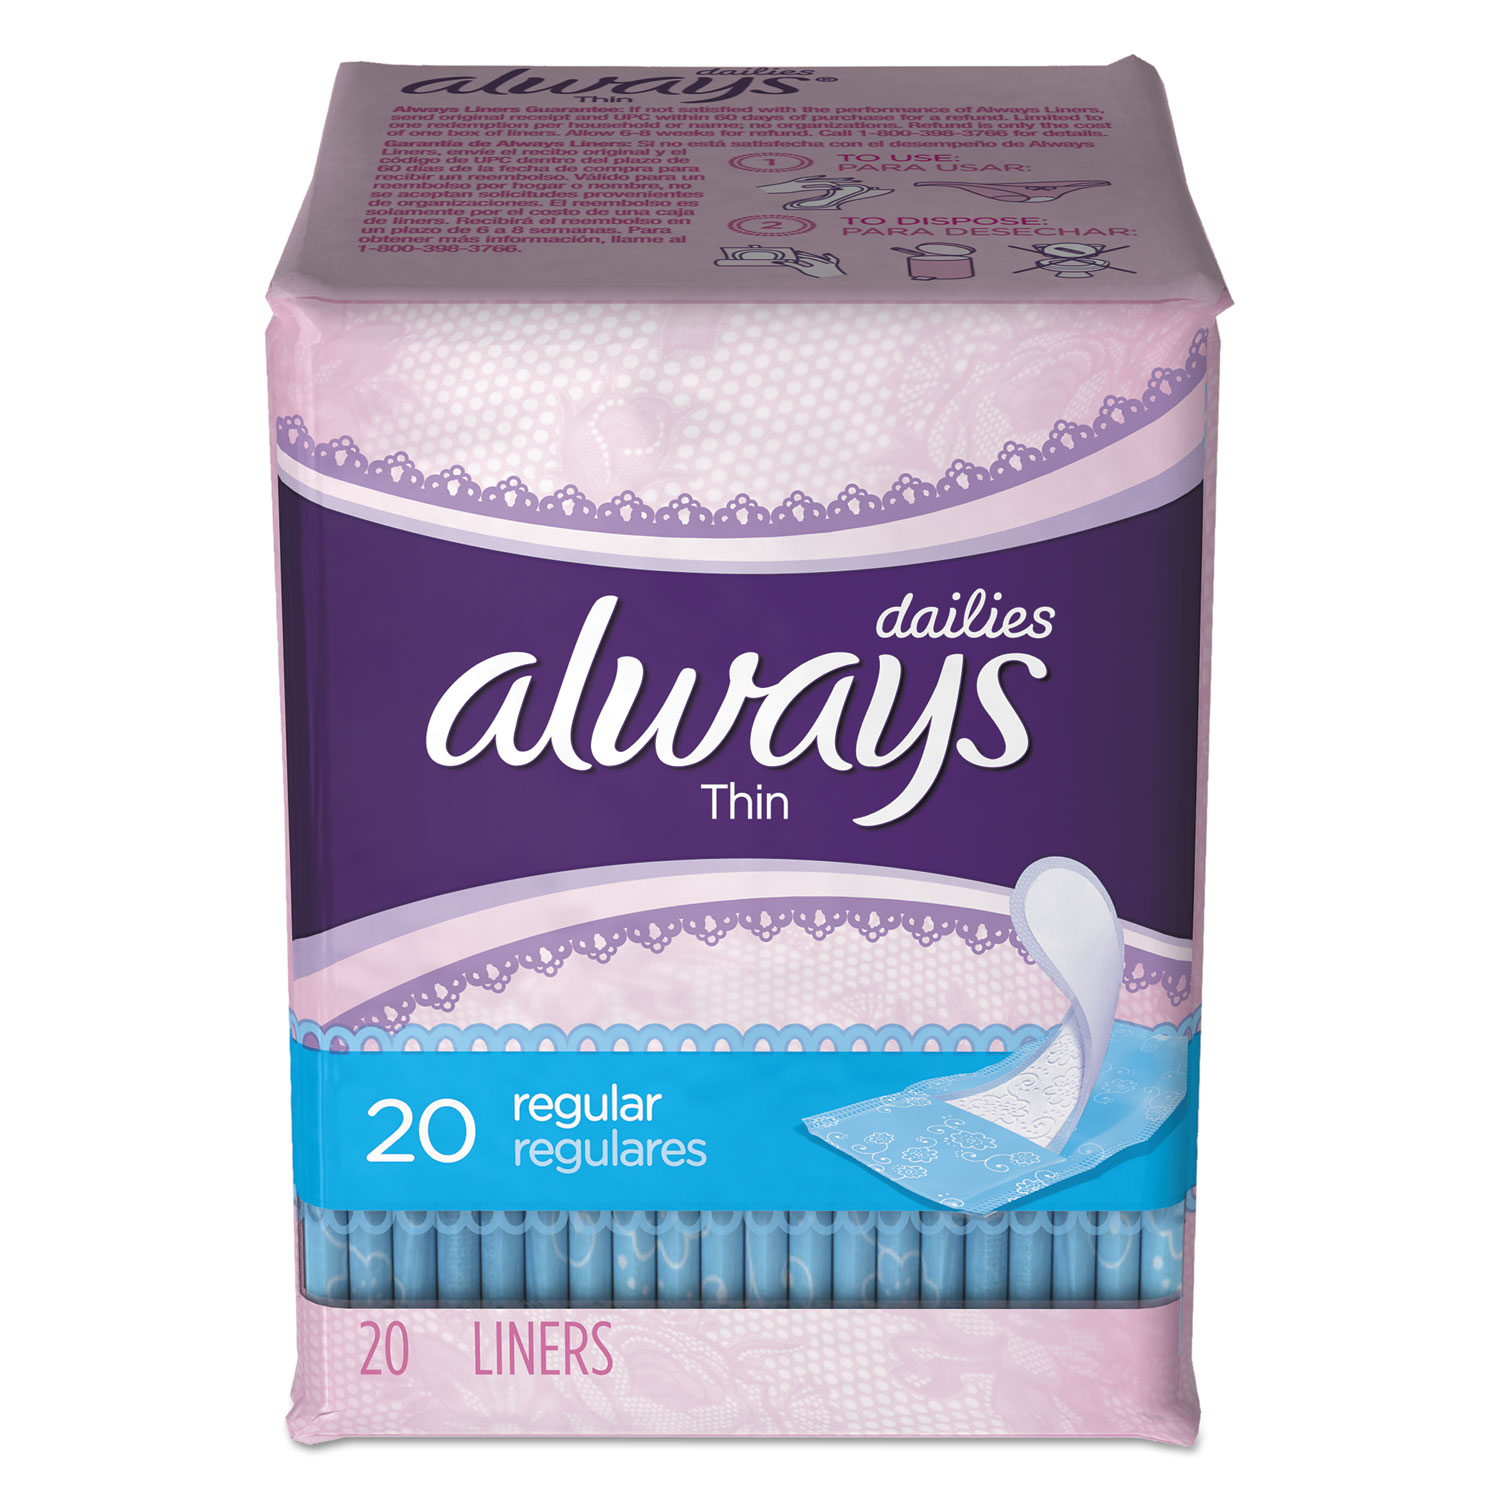 Thin Daily Panty Liners, Regular, 20/Pack, 24 Packs/Carton